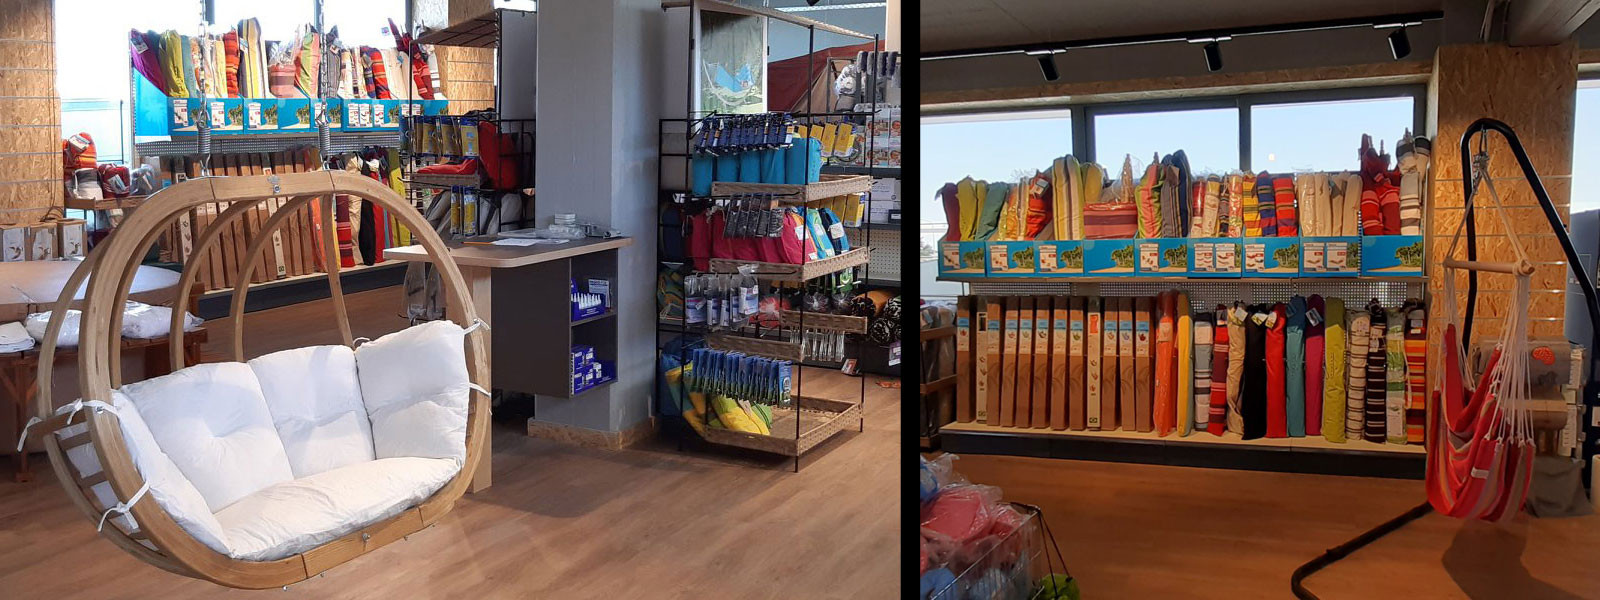 Almost all our products are ready for delivery in our new store in Thessaloniki!